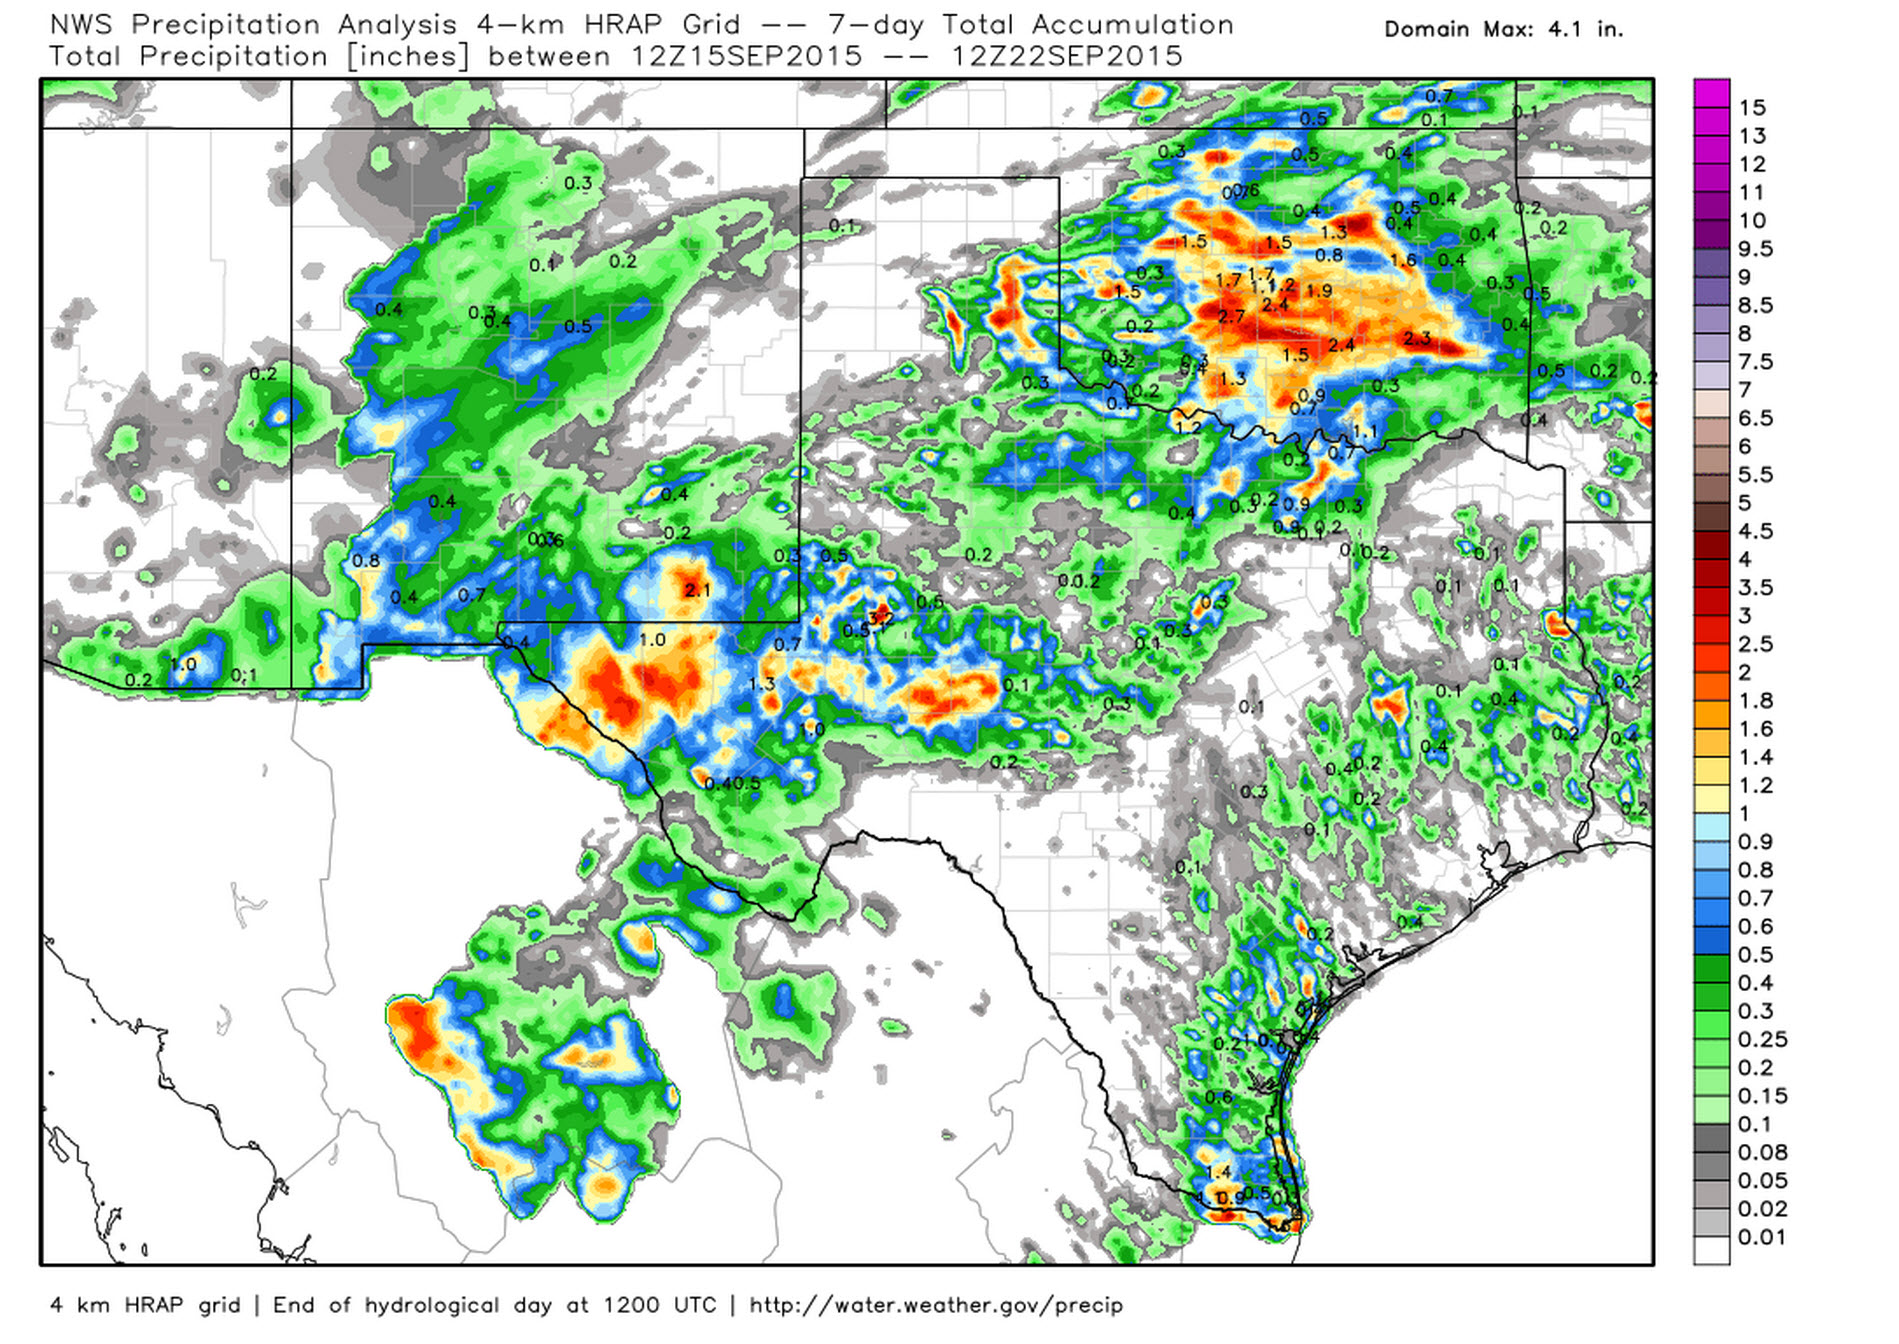 Rain accumulations over the past 7 days